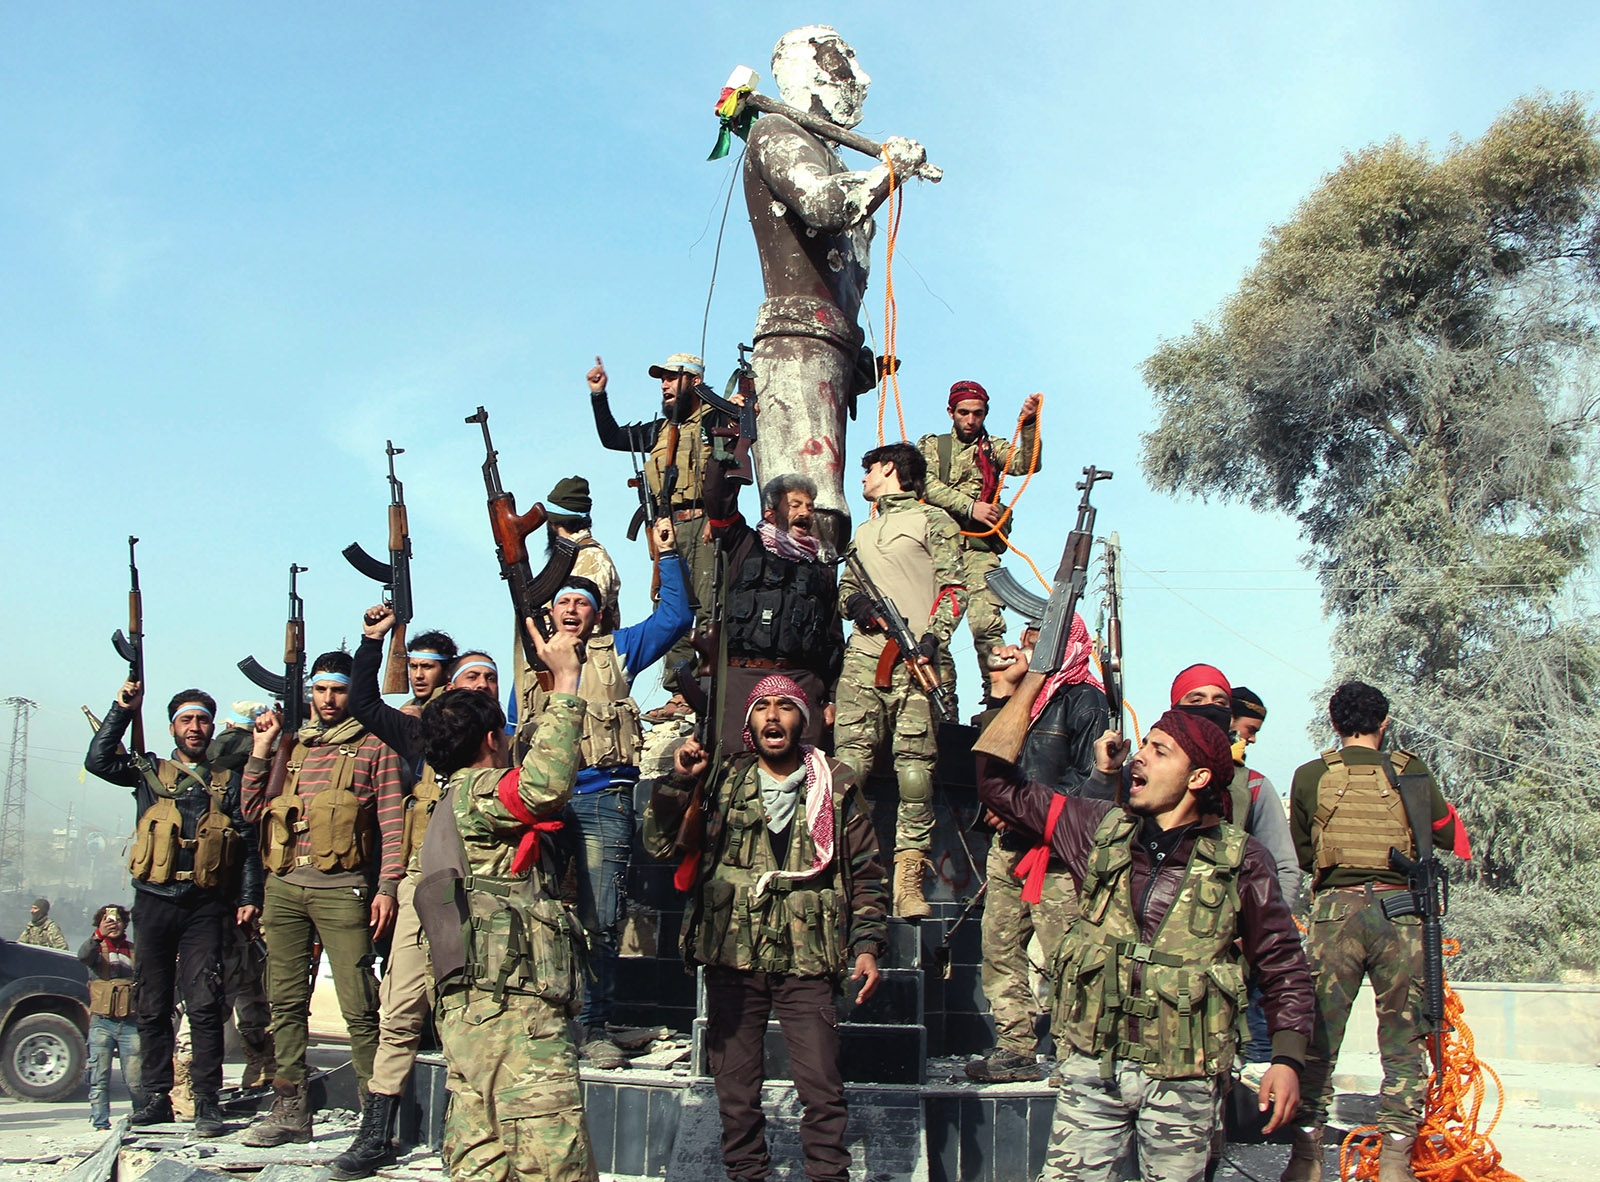 Turkish-backed Syrian National Army fighters preparing to destroy a statue of Kaveh, a heroic figure in Kurdish mythology, in Afrin, Syria, March 18, 2018